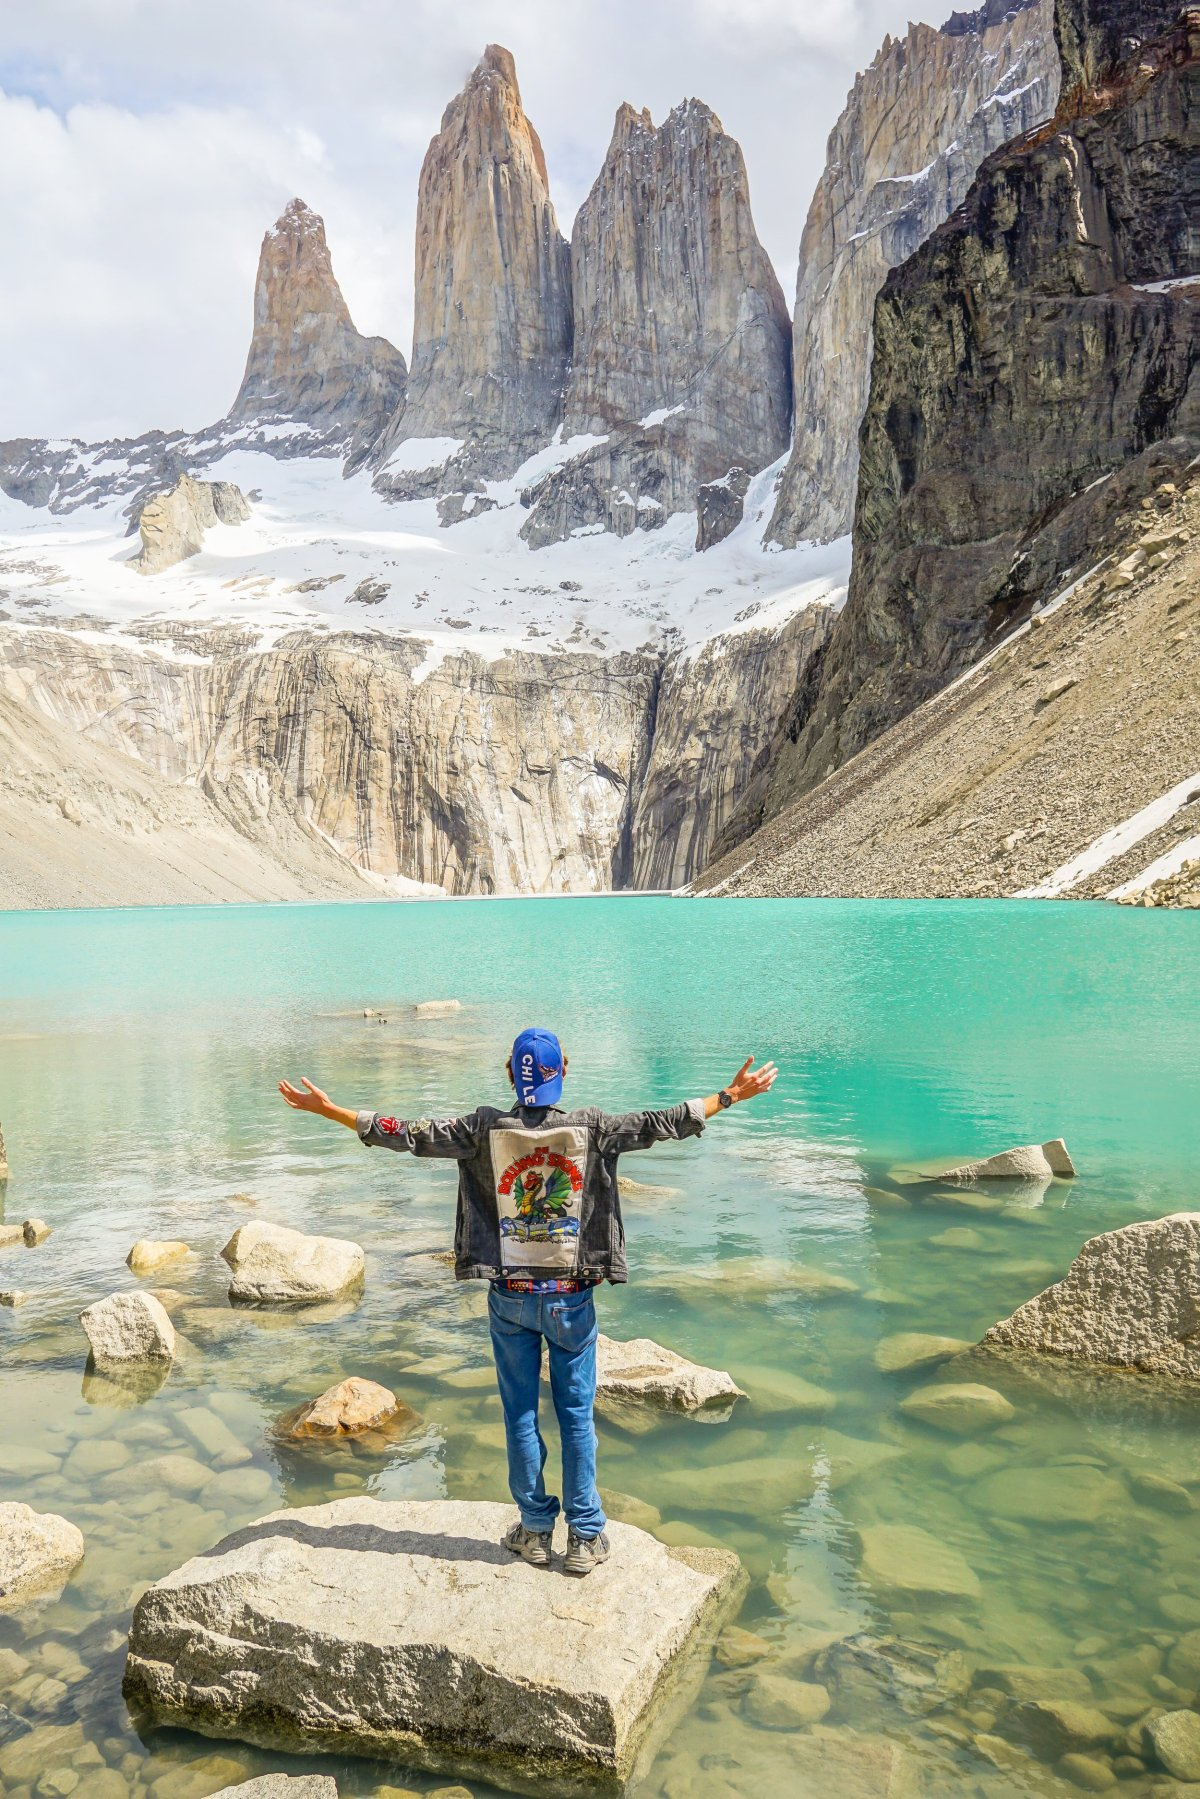 Reaching my destination at Torres del Paine National Park, Patagonia in Southern Chile!